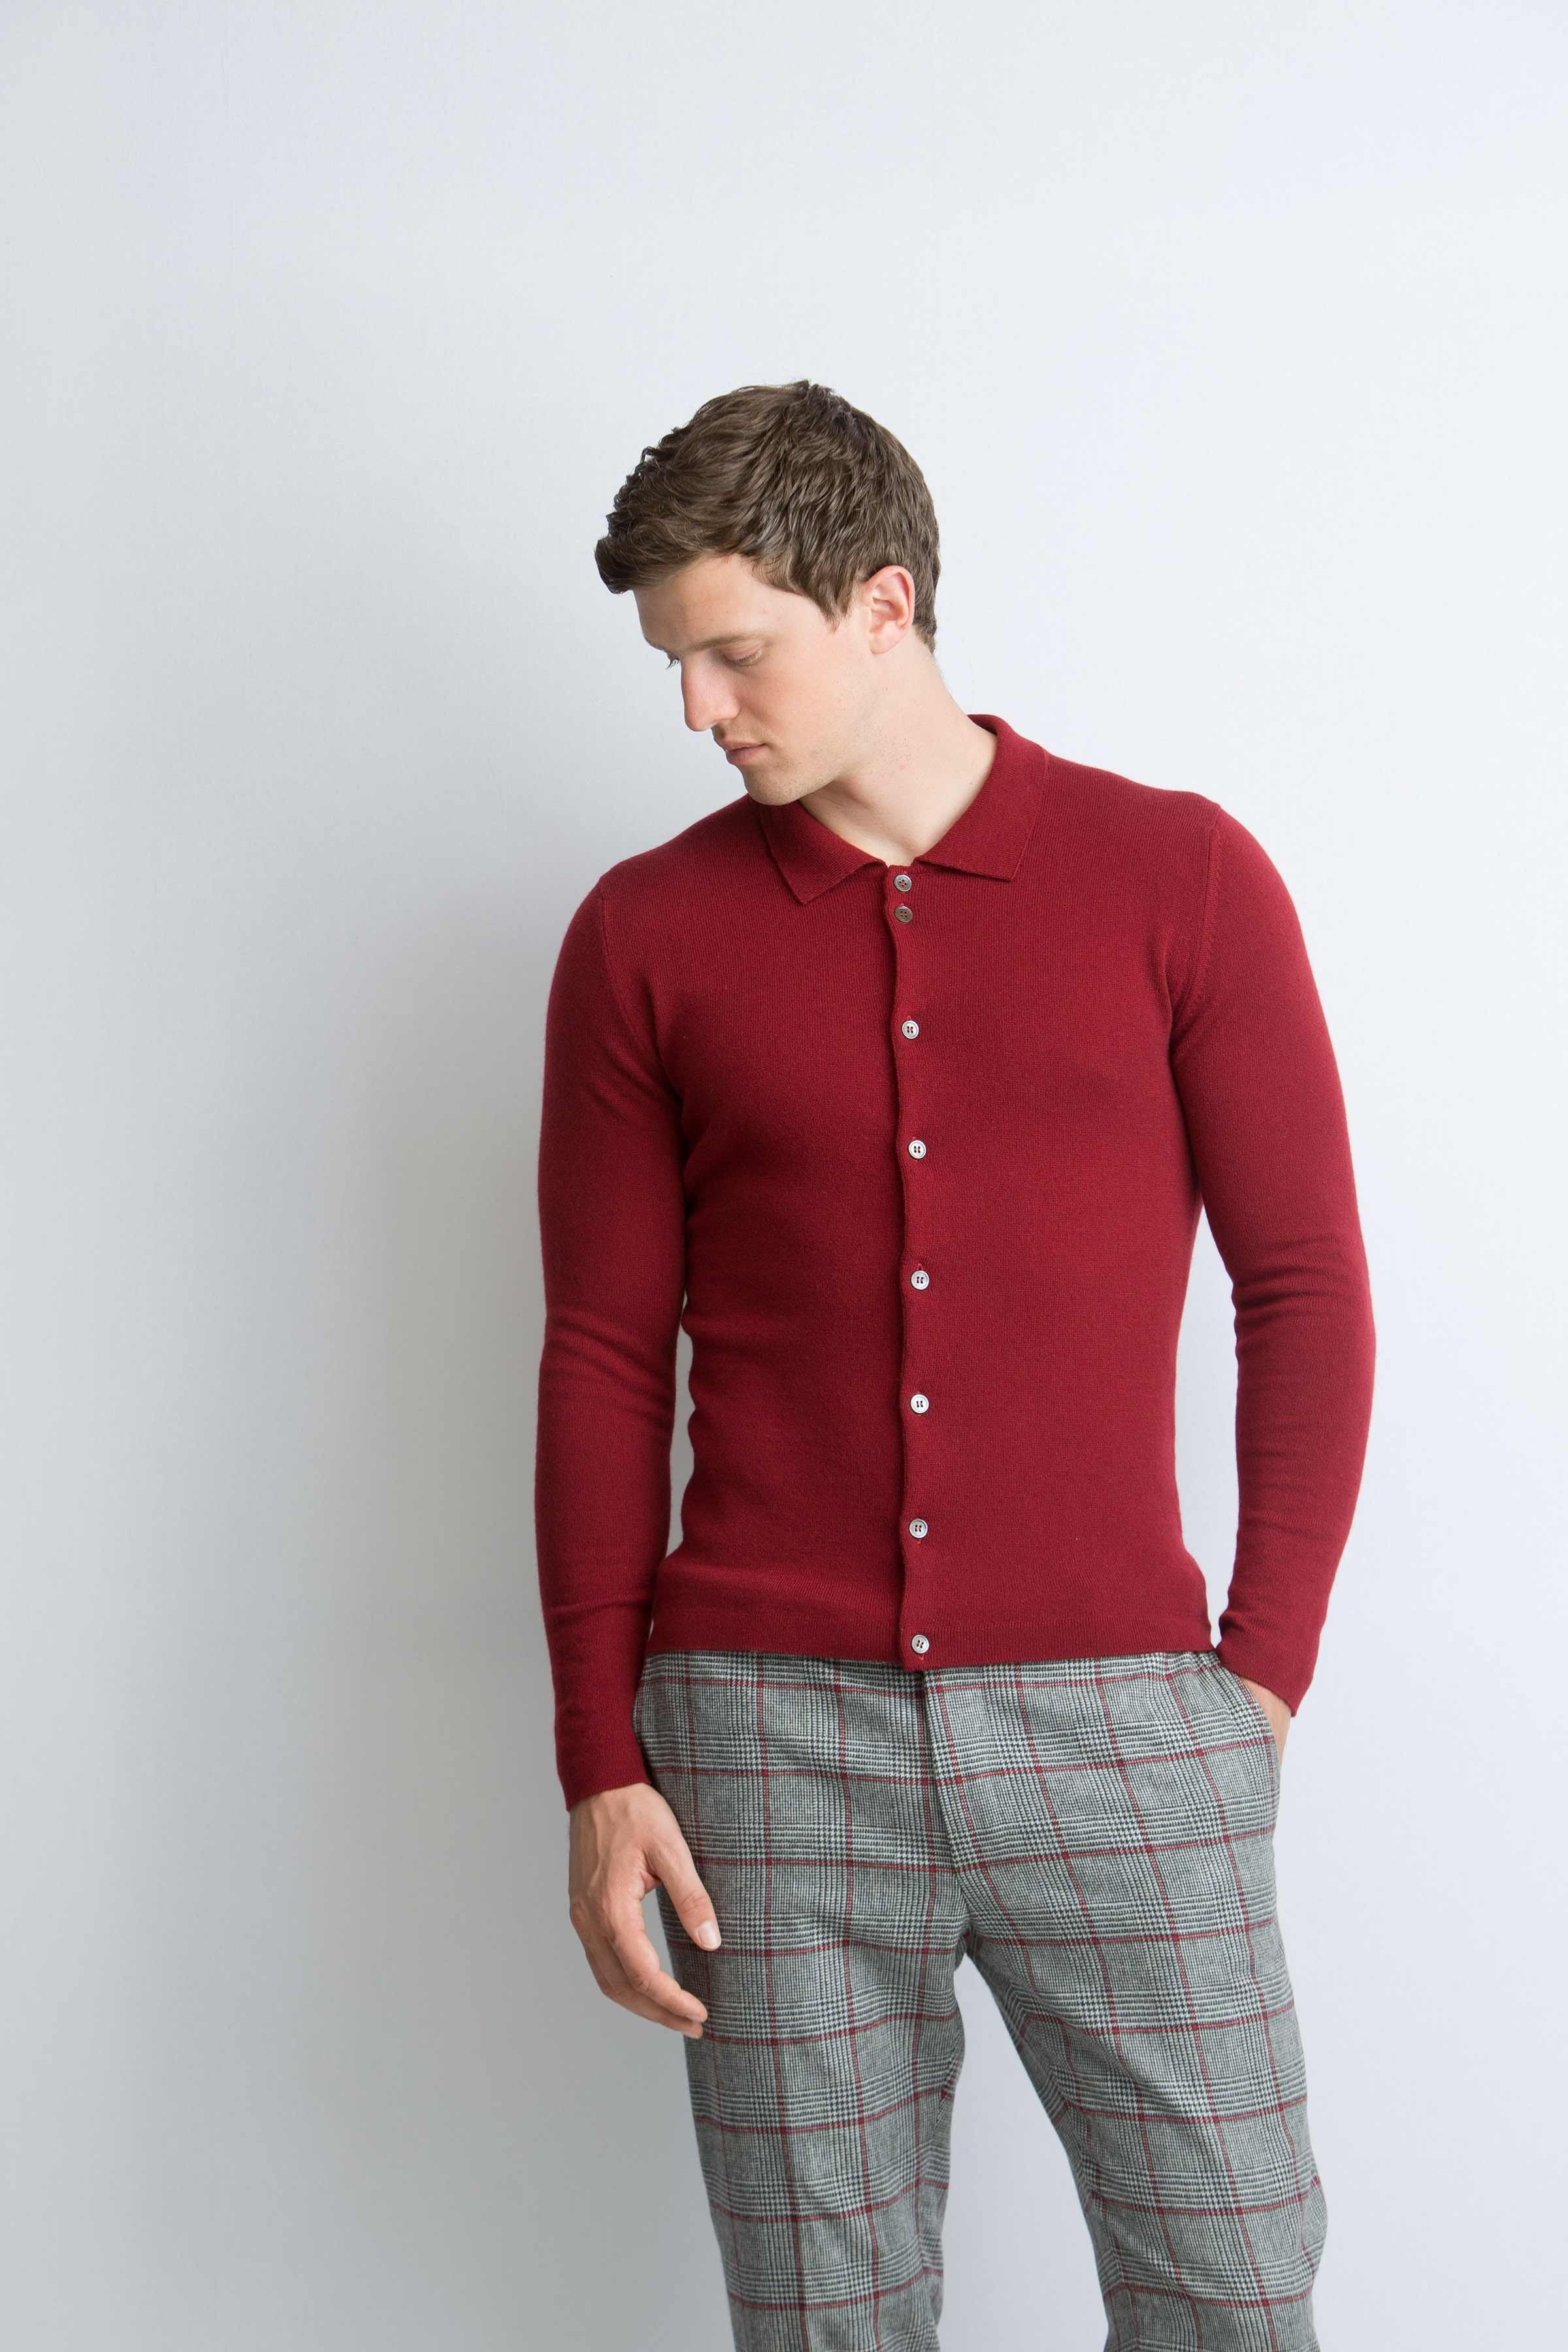 75b698538cb Tailored polo shirt cashmere cardigan in cabernet red | Knitwear ...